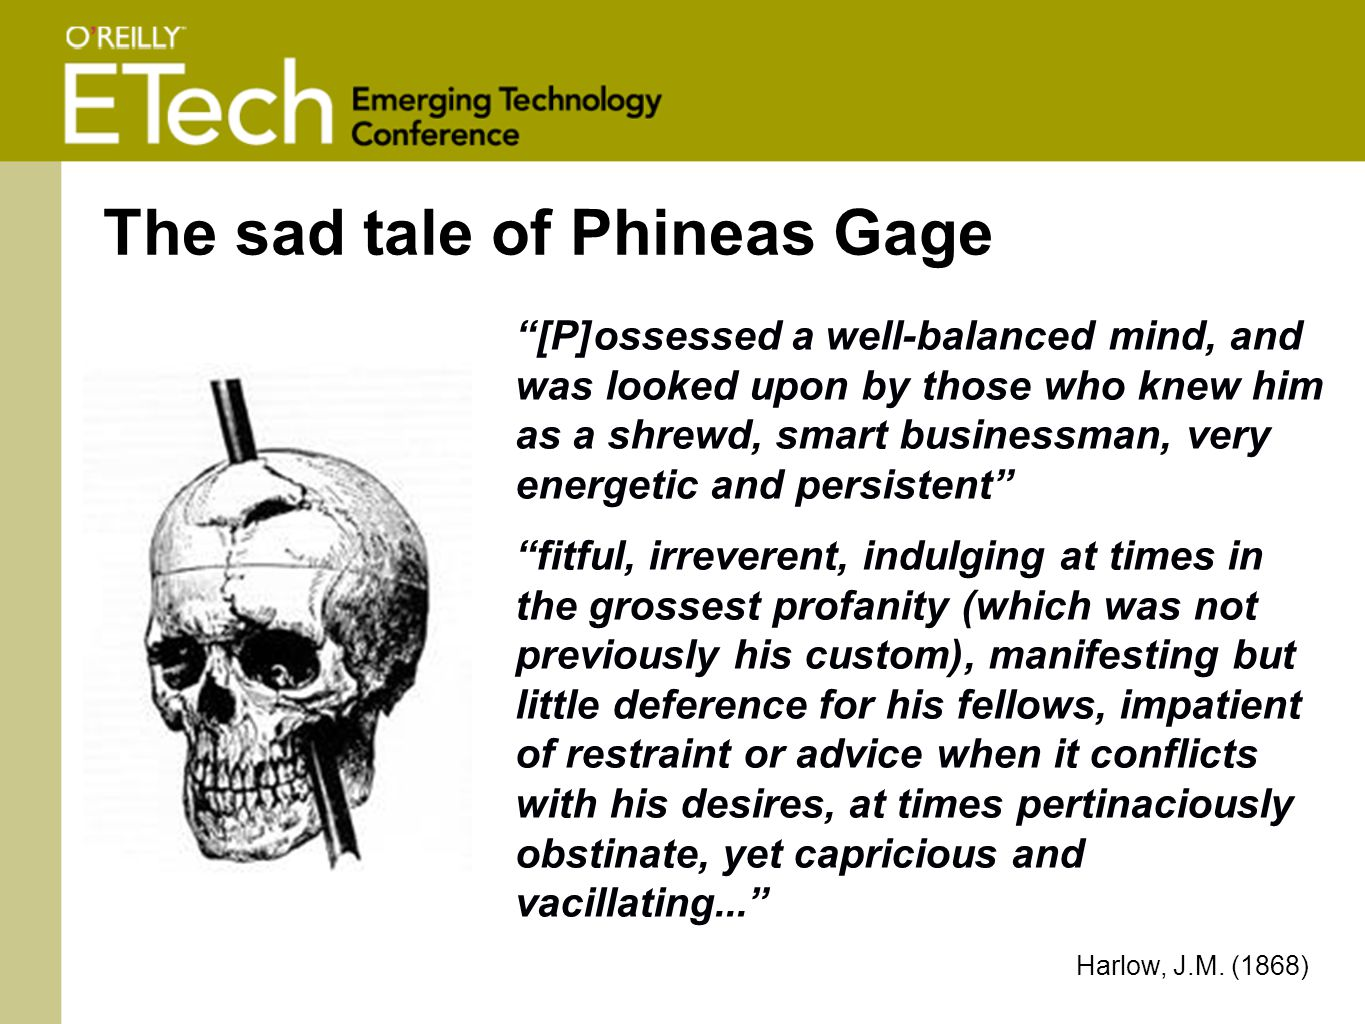 The sad tale of Phineas Gage [P]ossessed a well-balanced mind, and was looked upon by those who knew him as a shrewd, smart businessman, very energetic and persistent fitful, irreverent, indulging at times in the grossest profanity (which was not previously his custom), manifesting but little deference for his fellows, impatient of restraint or advice when it conflicts with his desires, at times pertinaciously obstinate, yet capricious and vacillating... Harlow, J.M.